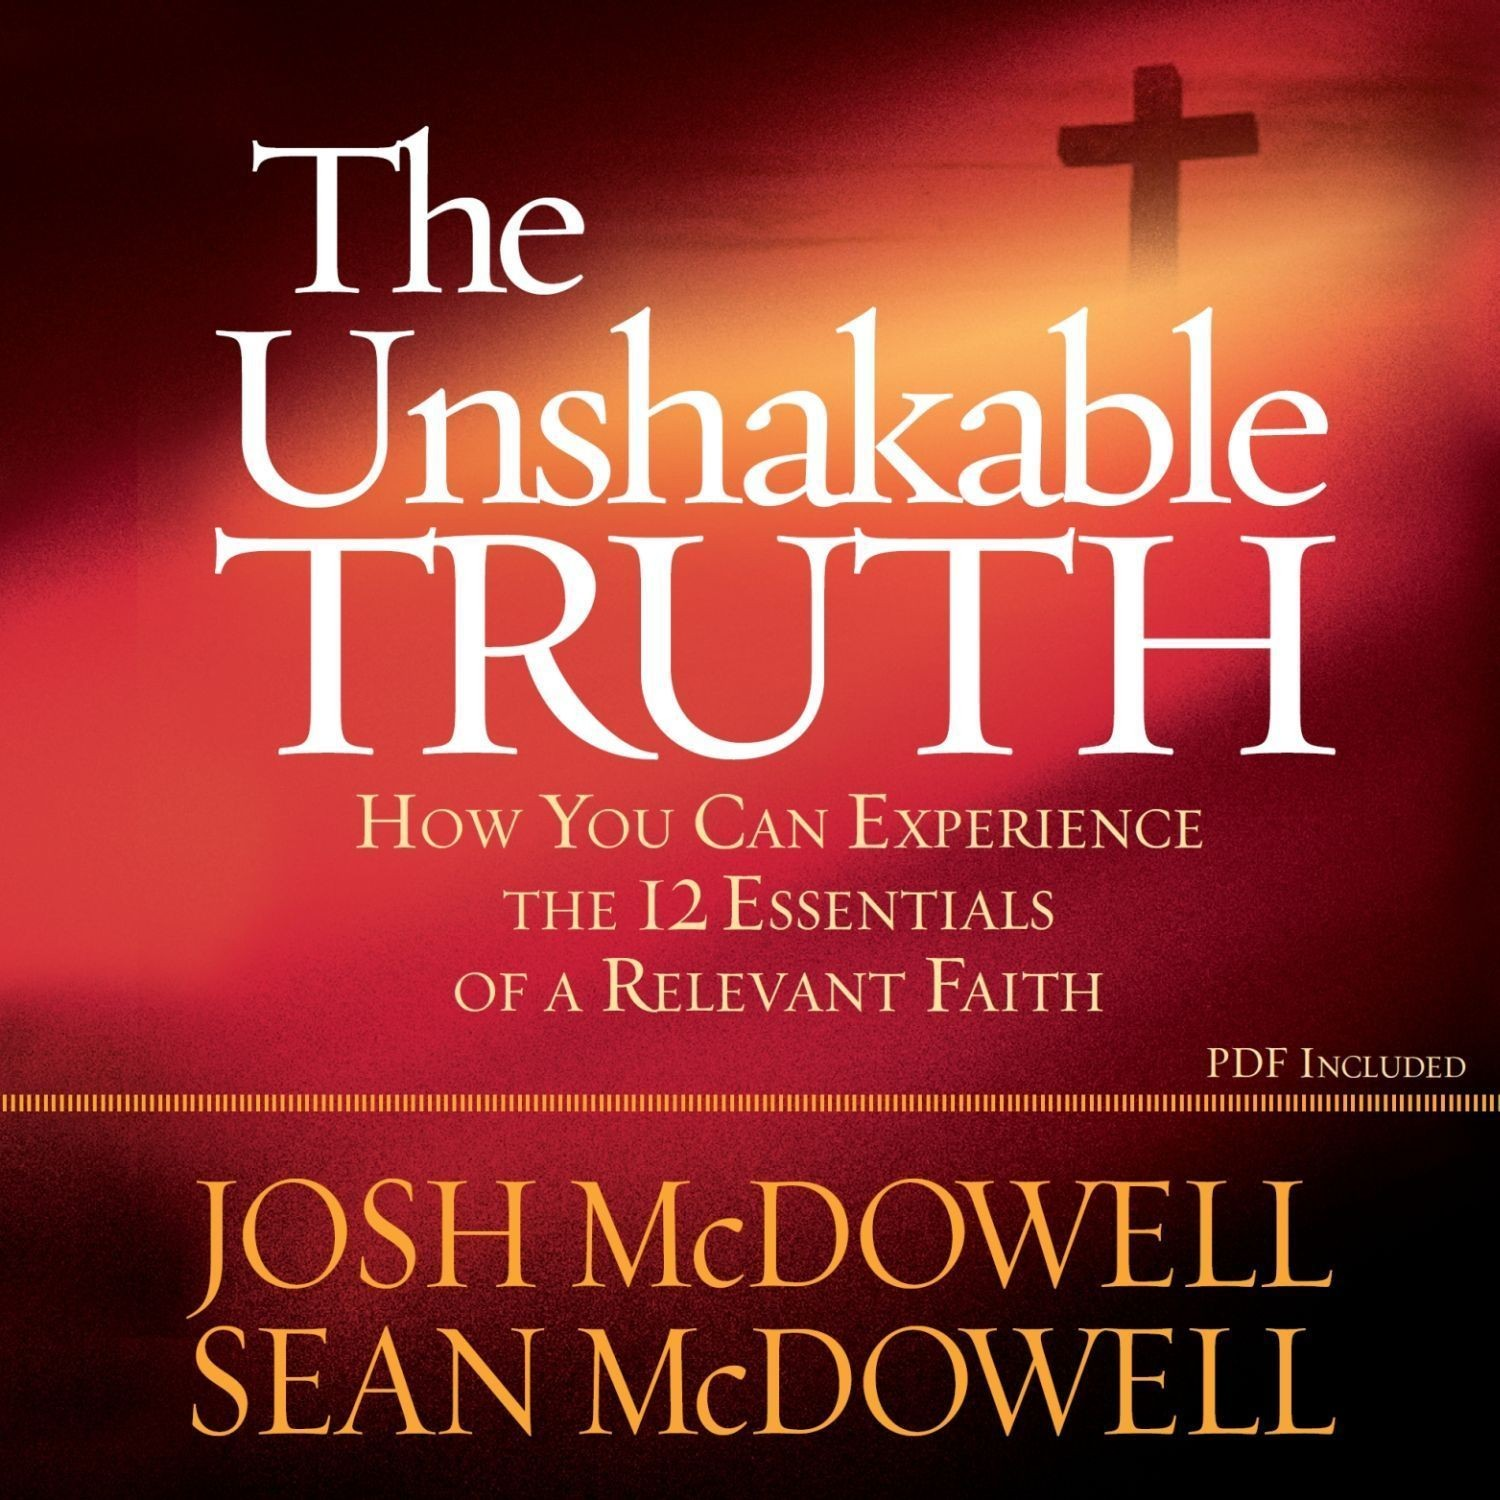 Printable The Unshakable Truth: How You Can Experience the 12 Essentials of a Relevant Faith Audiobook Cover Art